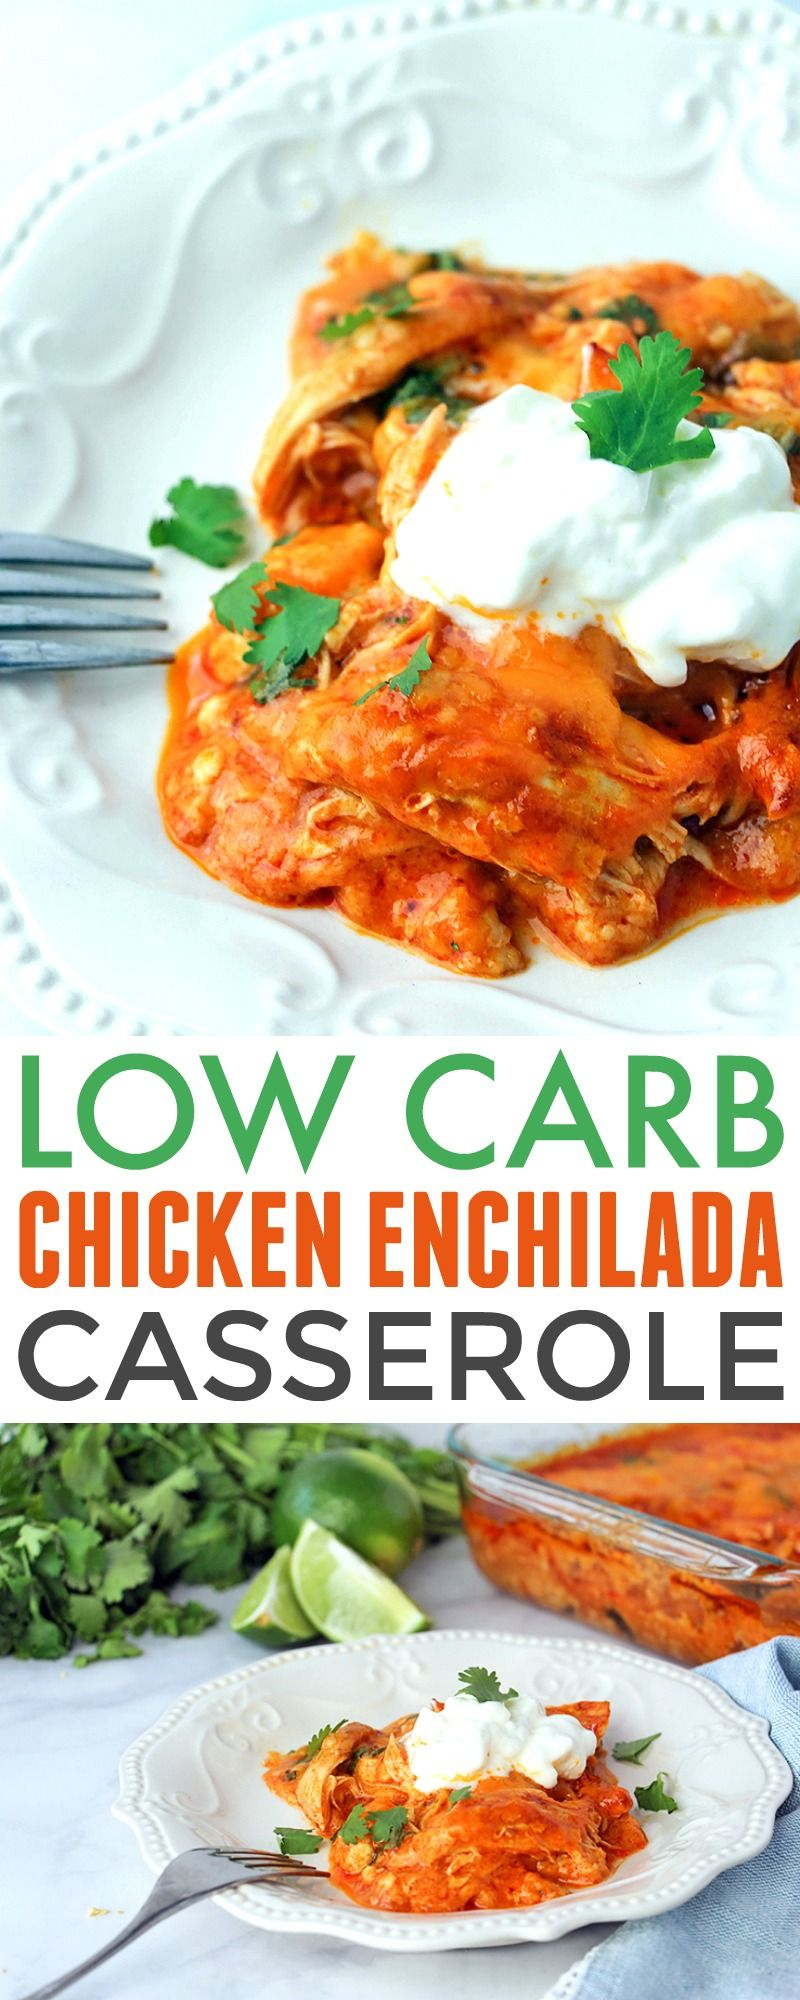 Low Carb Chicken Enchilada Casserole - easy and delish way to enjoy  enchiladas on a low carb or keto diet. It's based off the America's Test  Kitchen Chicken ...